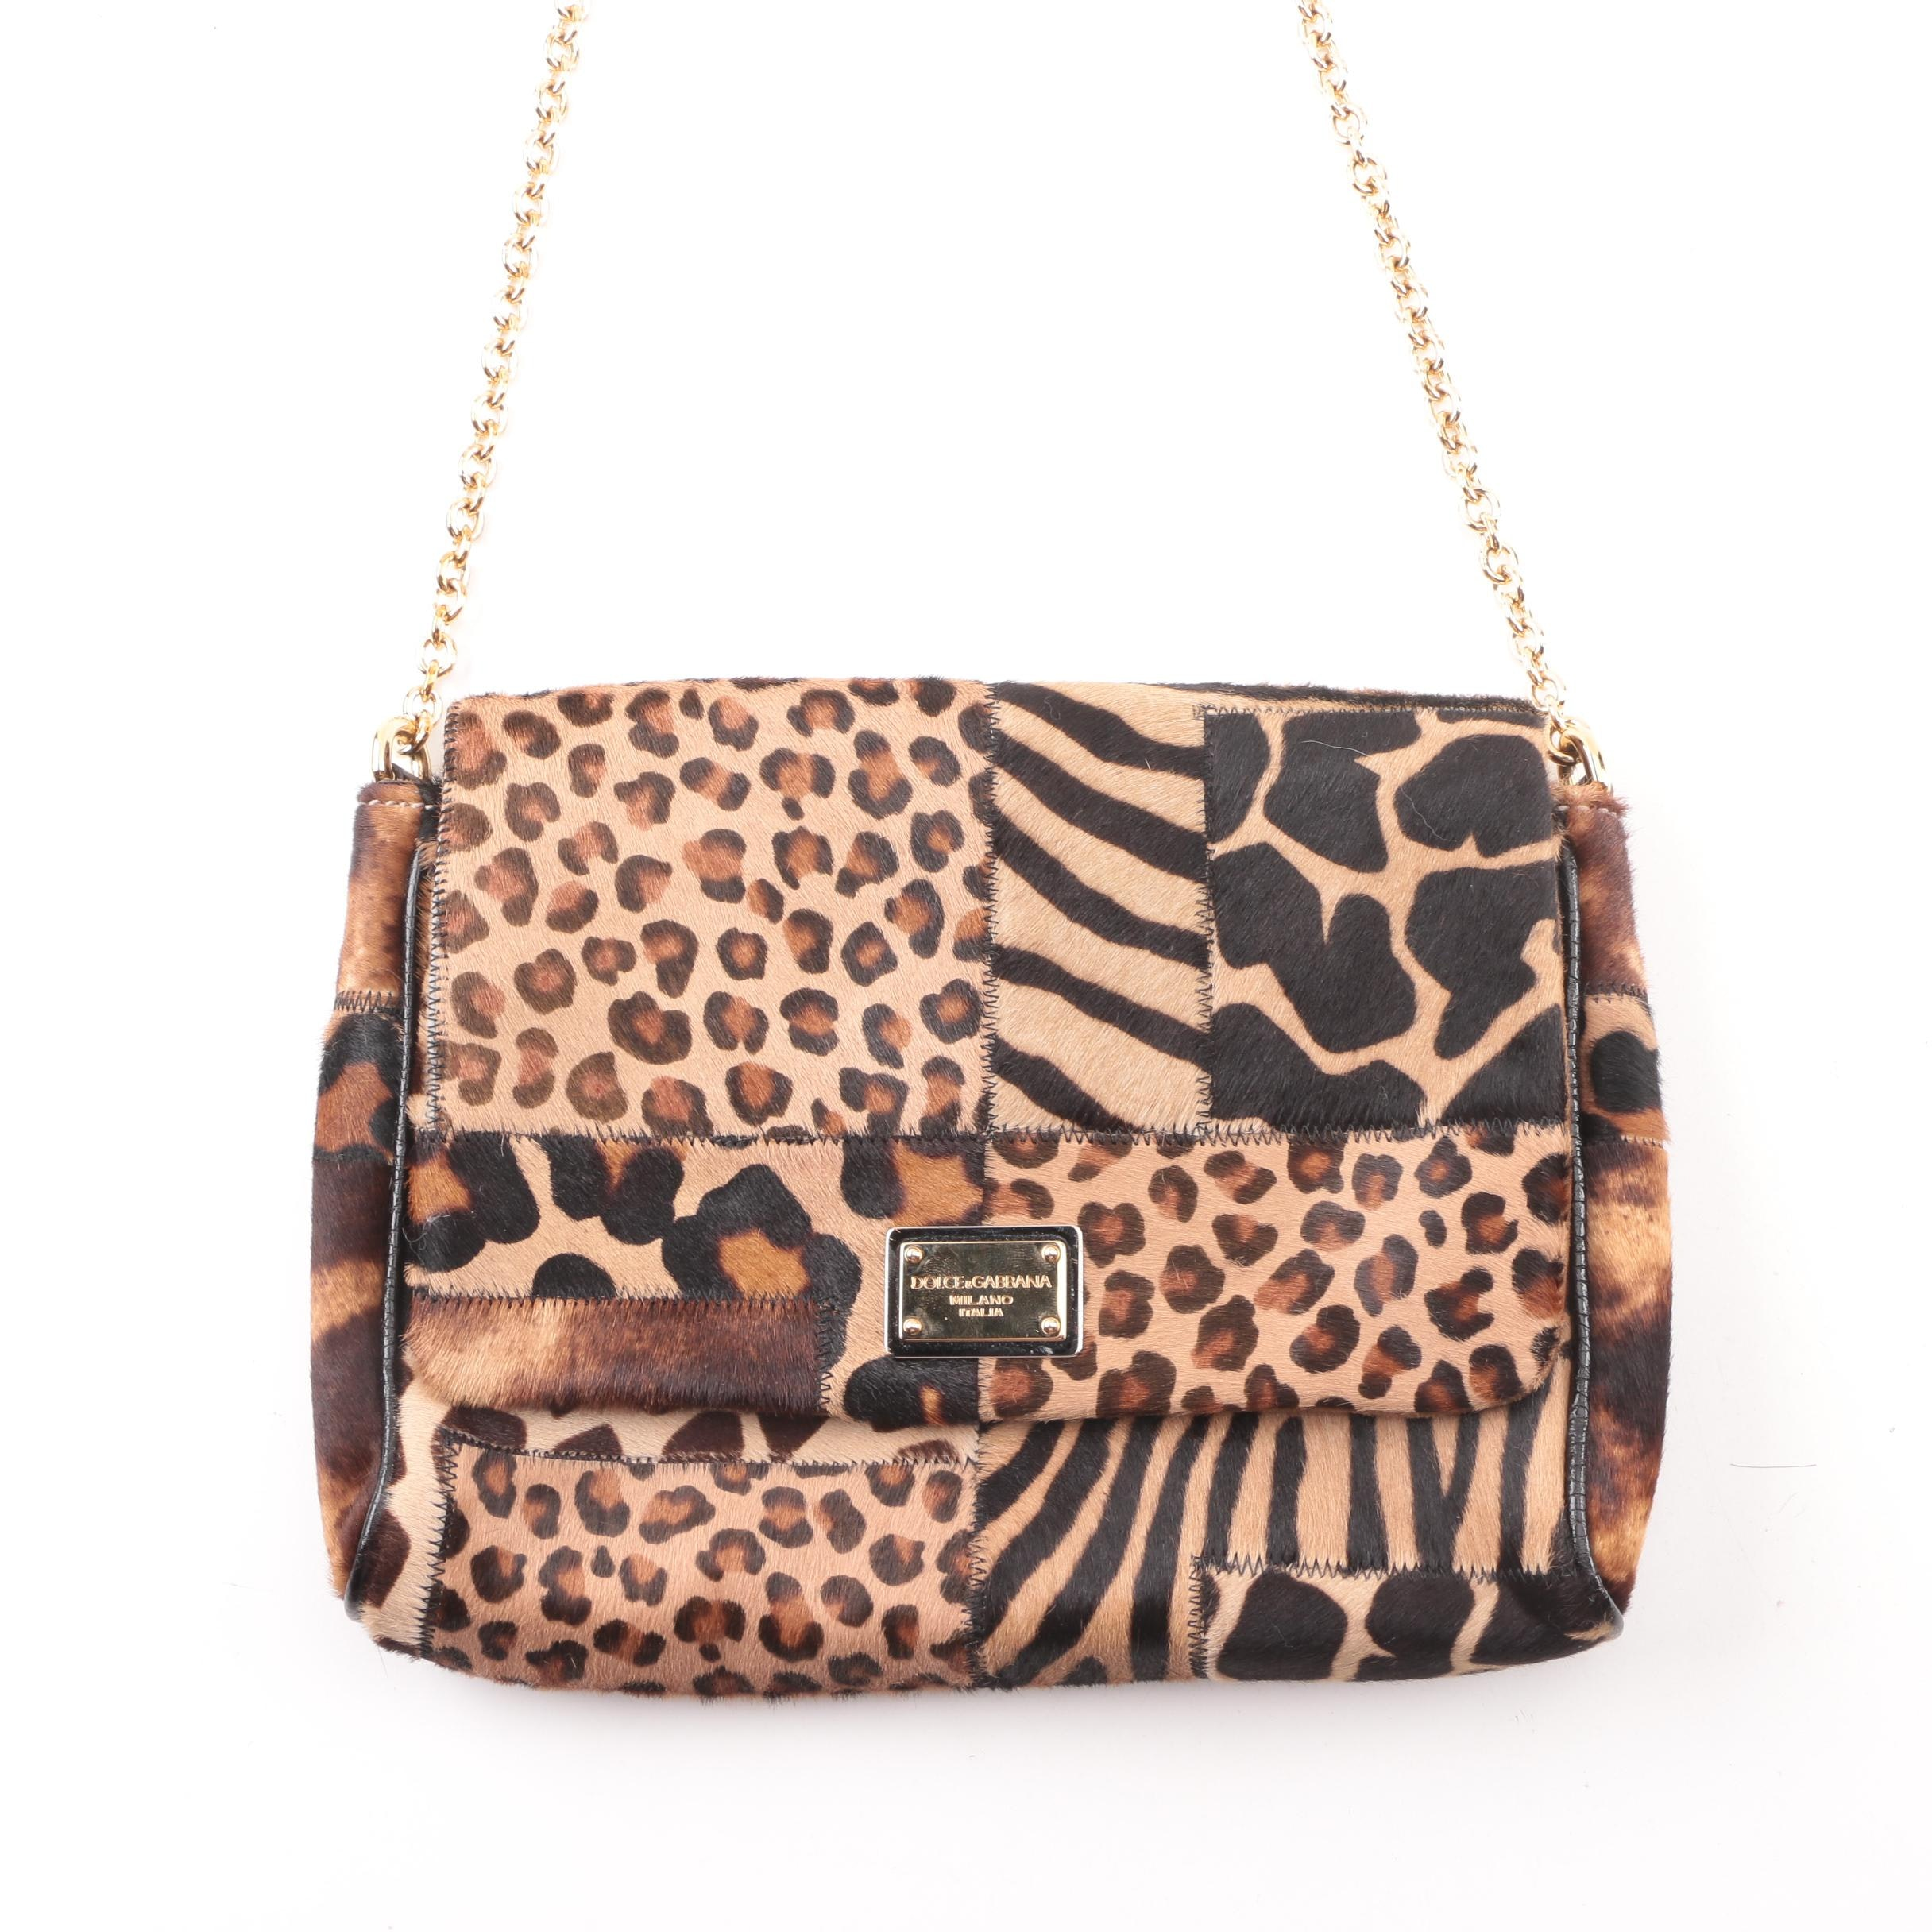 Dolce & Gabbana Patchwork Animal Print Calf Hair Crossbody